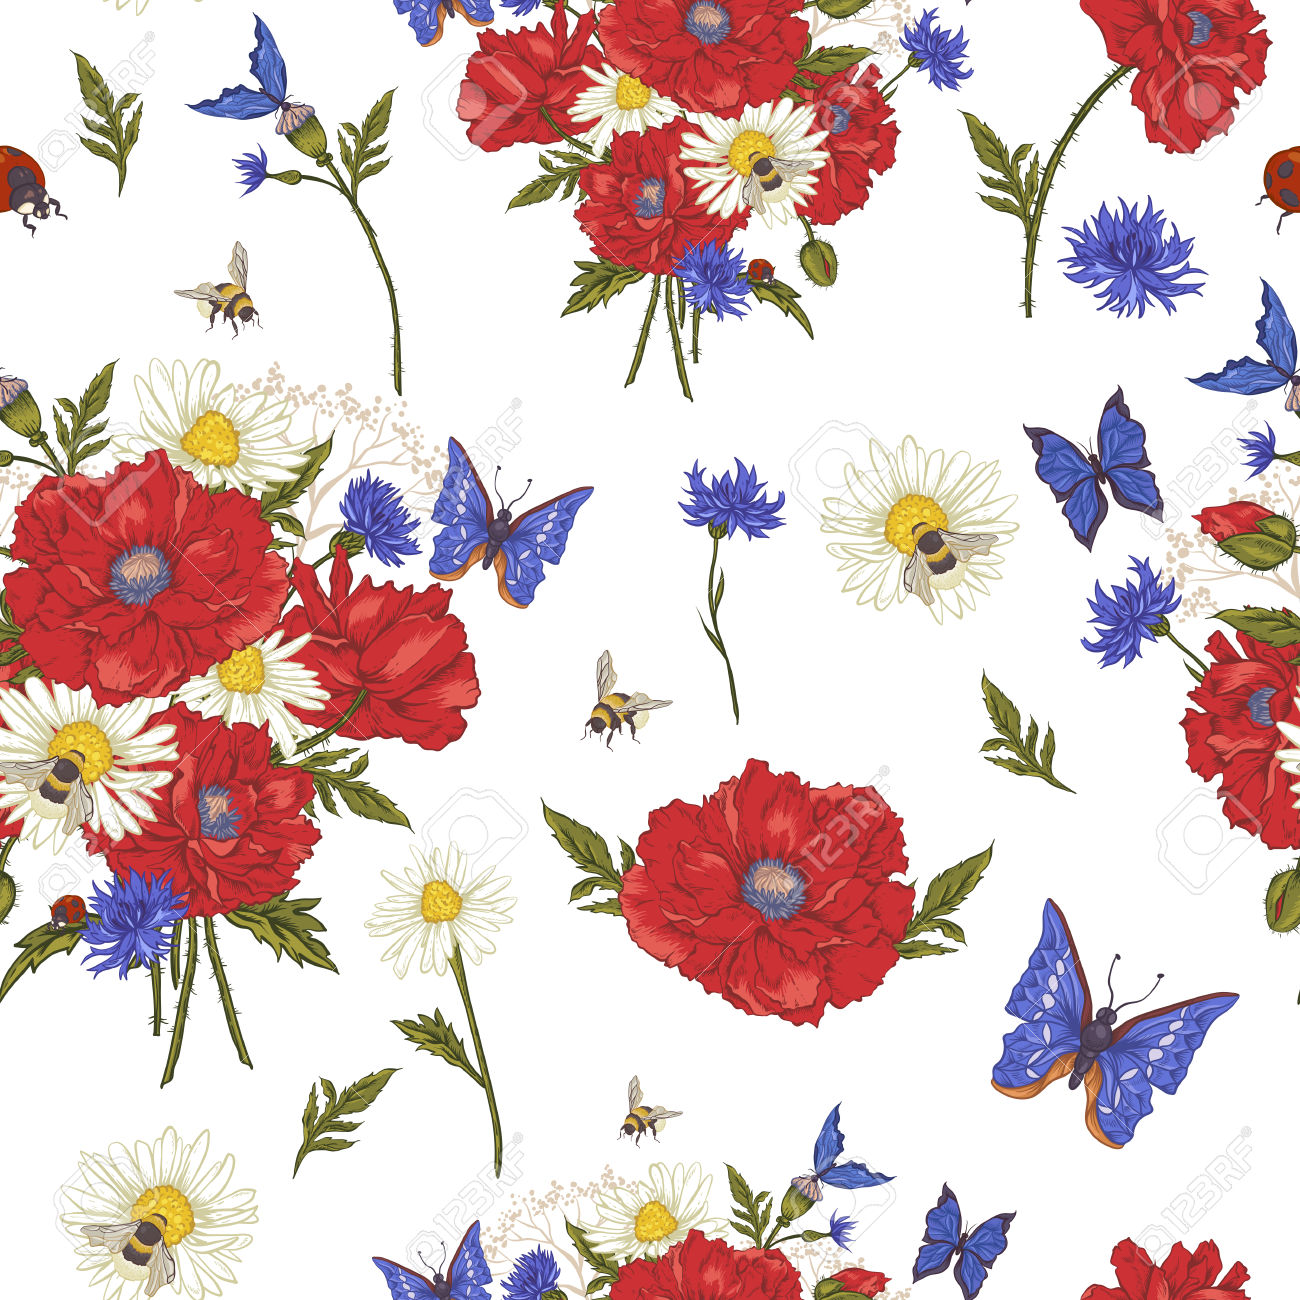 Summer Vintage Floral Seamless Pattern With Blooming Red Poppies.